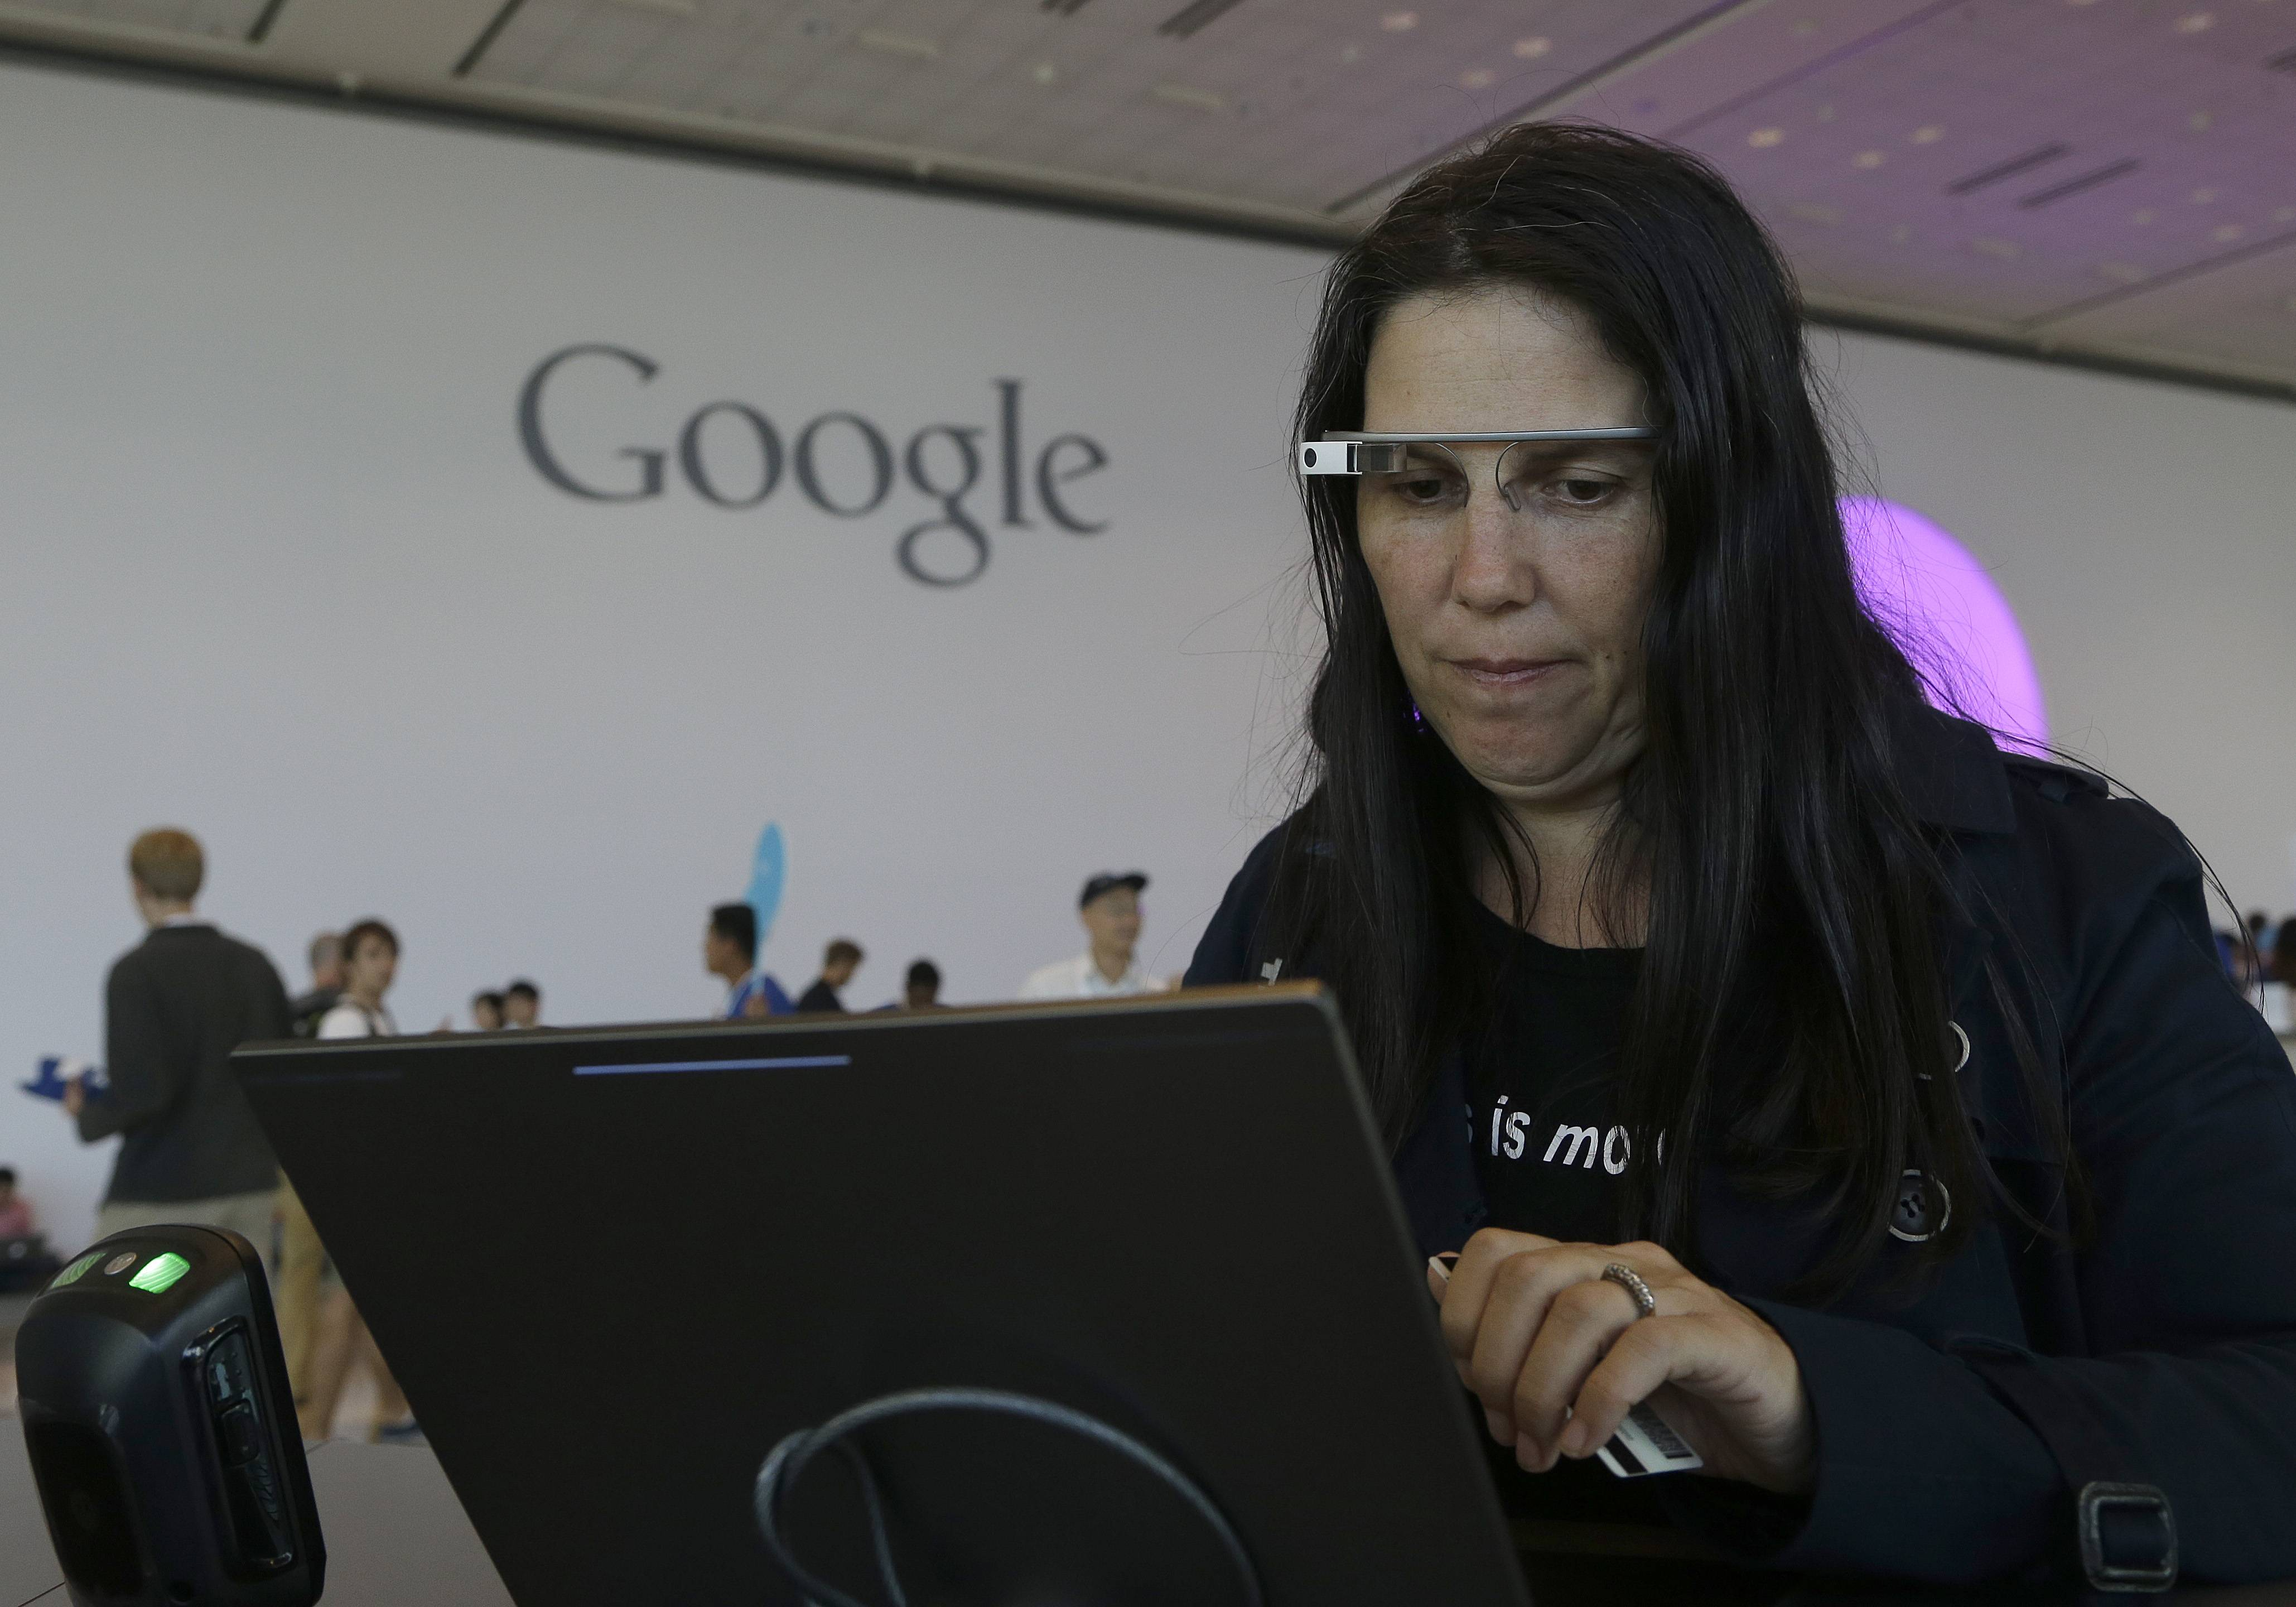 Cecilia Abadie, founder of 33 Labs, uses a pair of Google Glass as she registers for Google I/O 2014 at the Moscone Center in San Francisco, Tuesday, June 24, 2014.